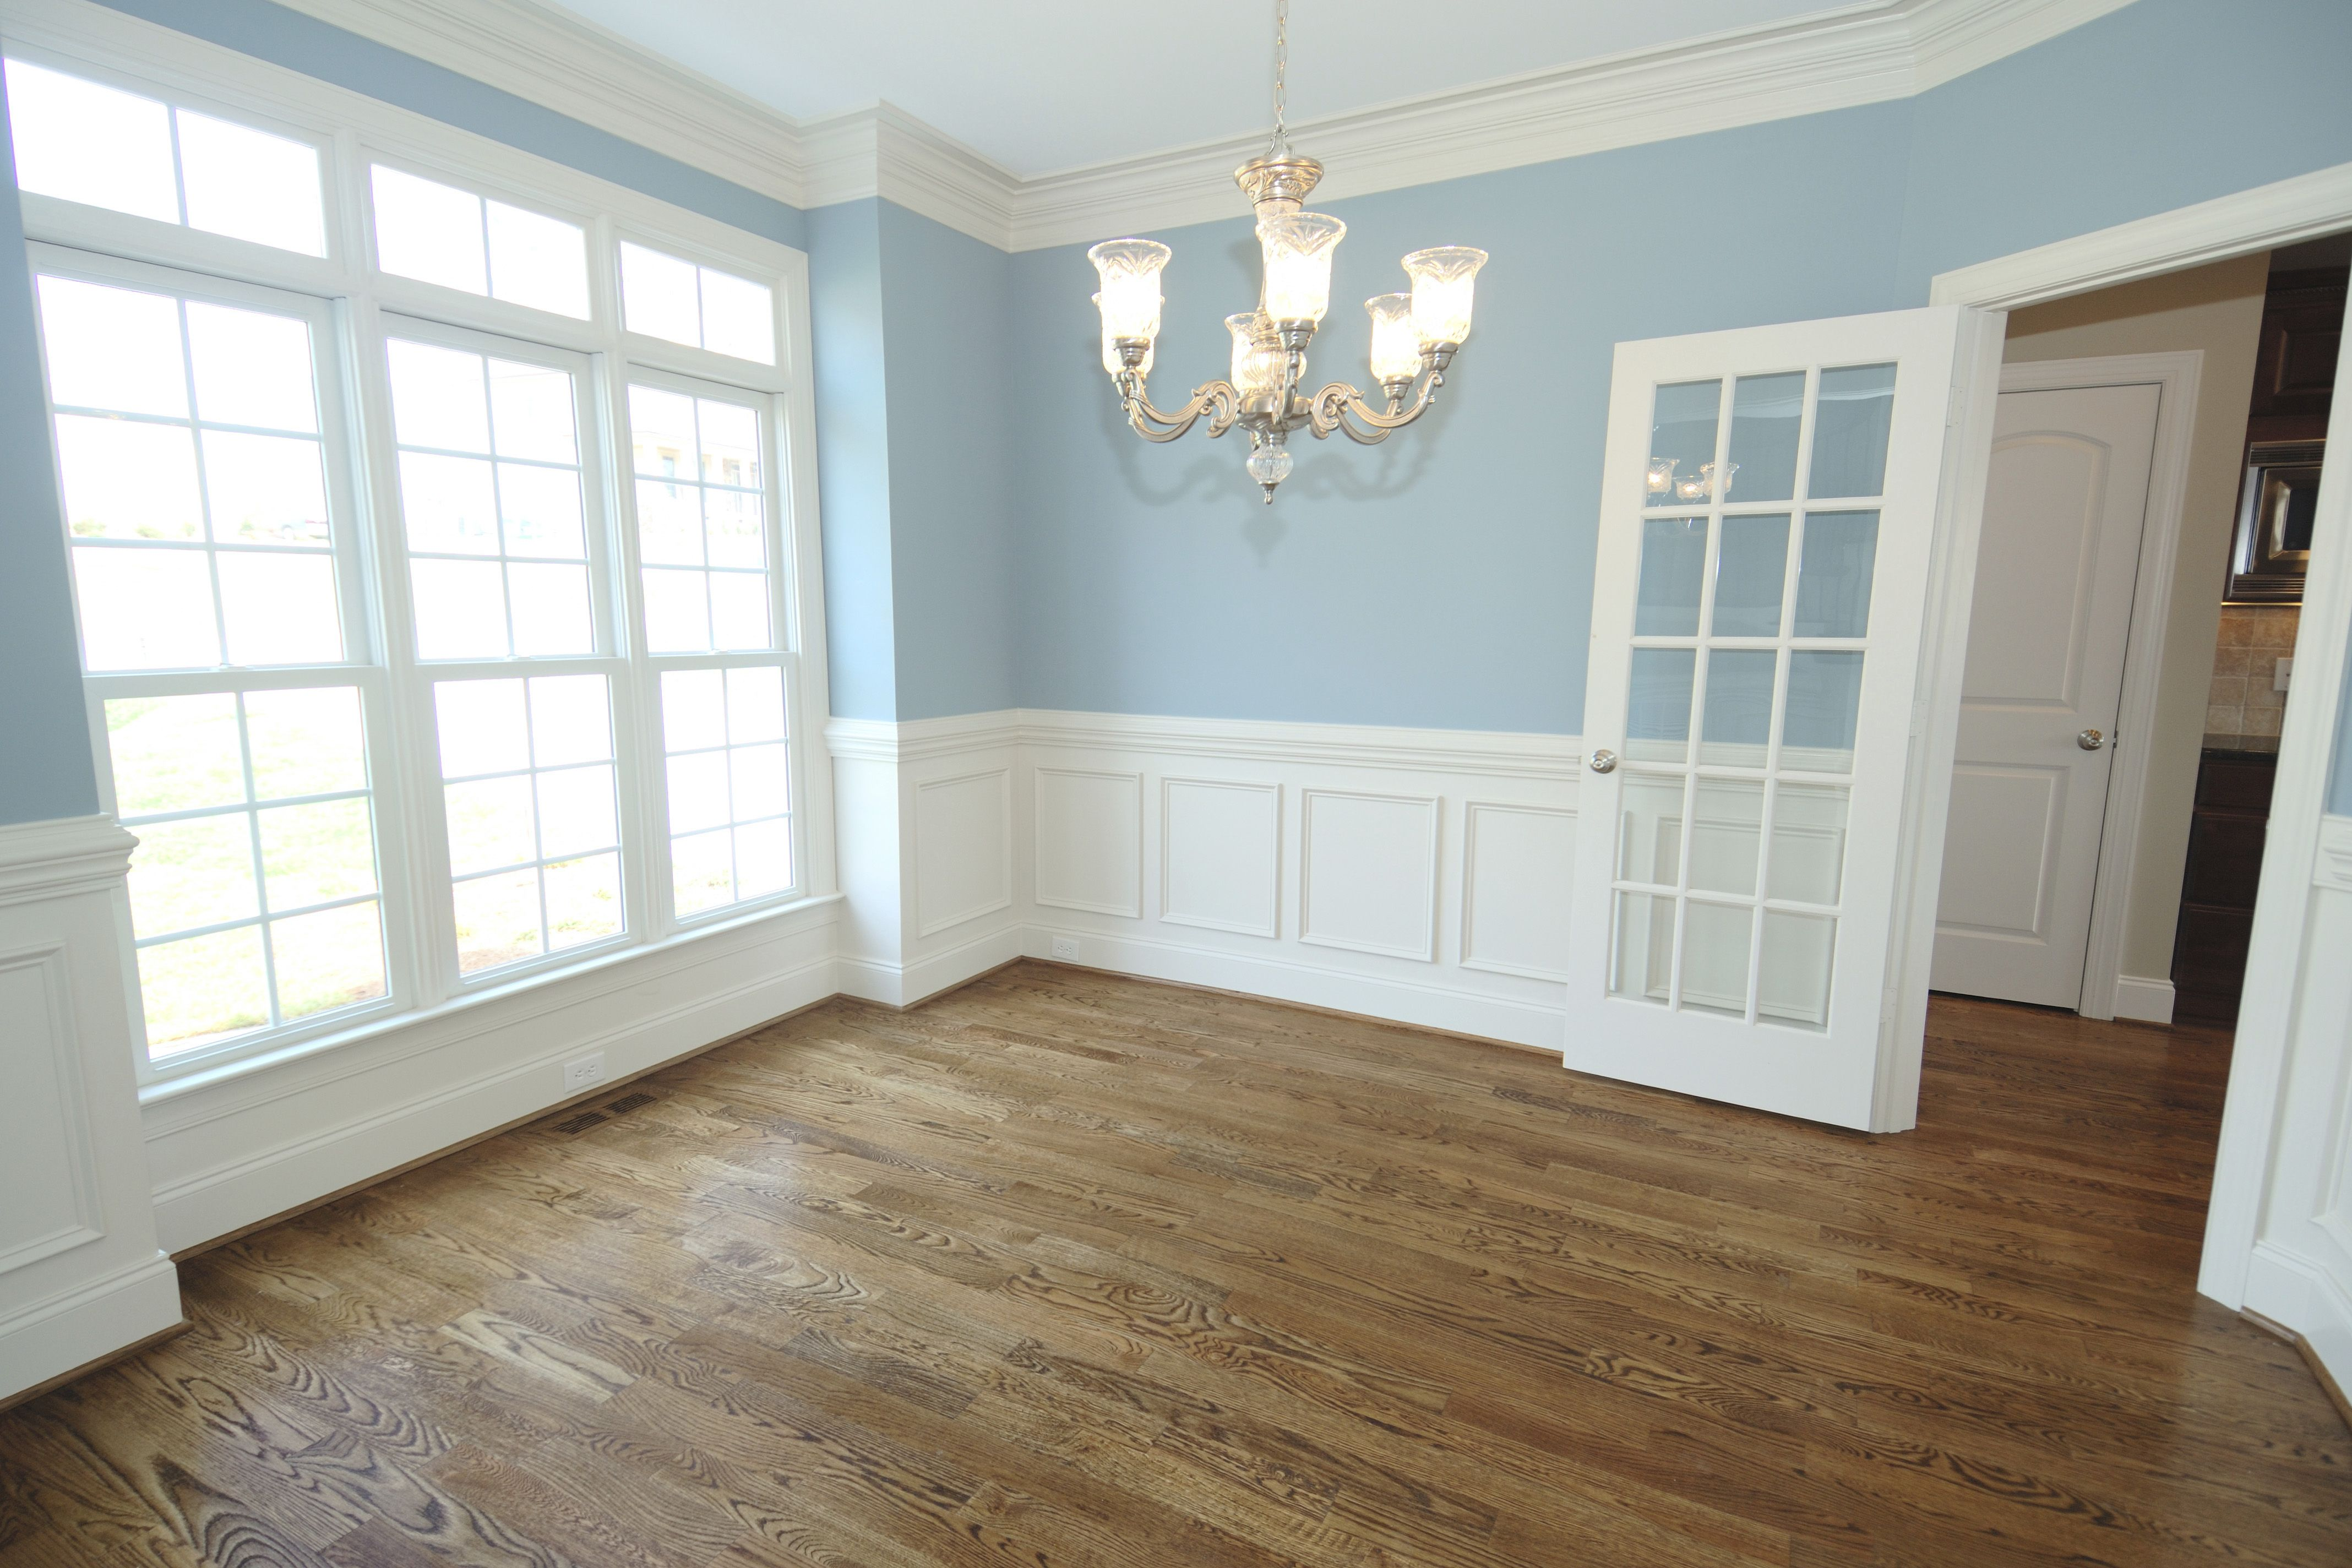 Image Result For Light Blue Walls Wood Floors White Wainscoting Wainscoting Styles Installing Wainscoting